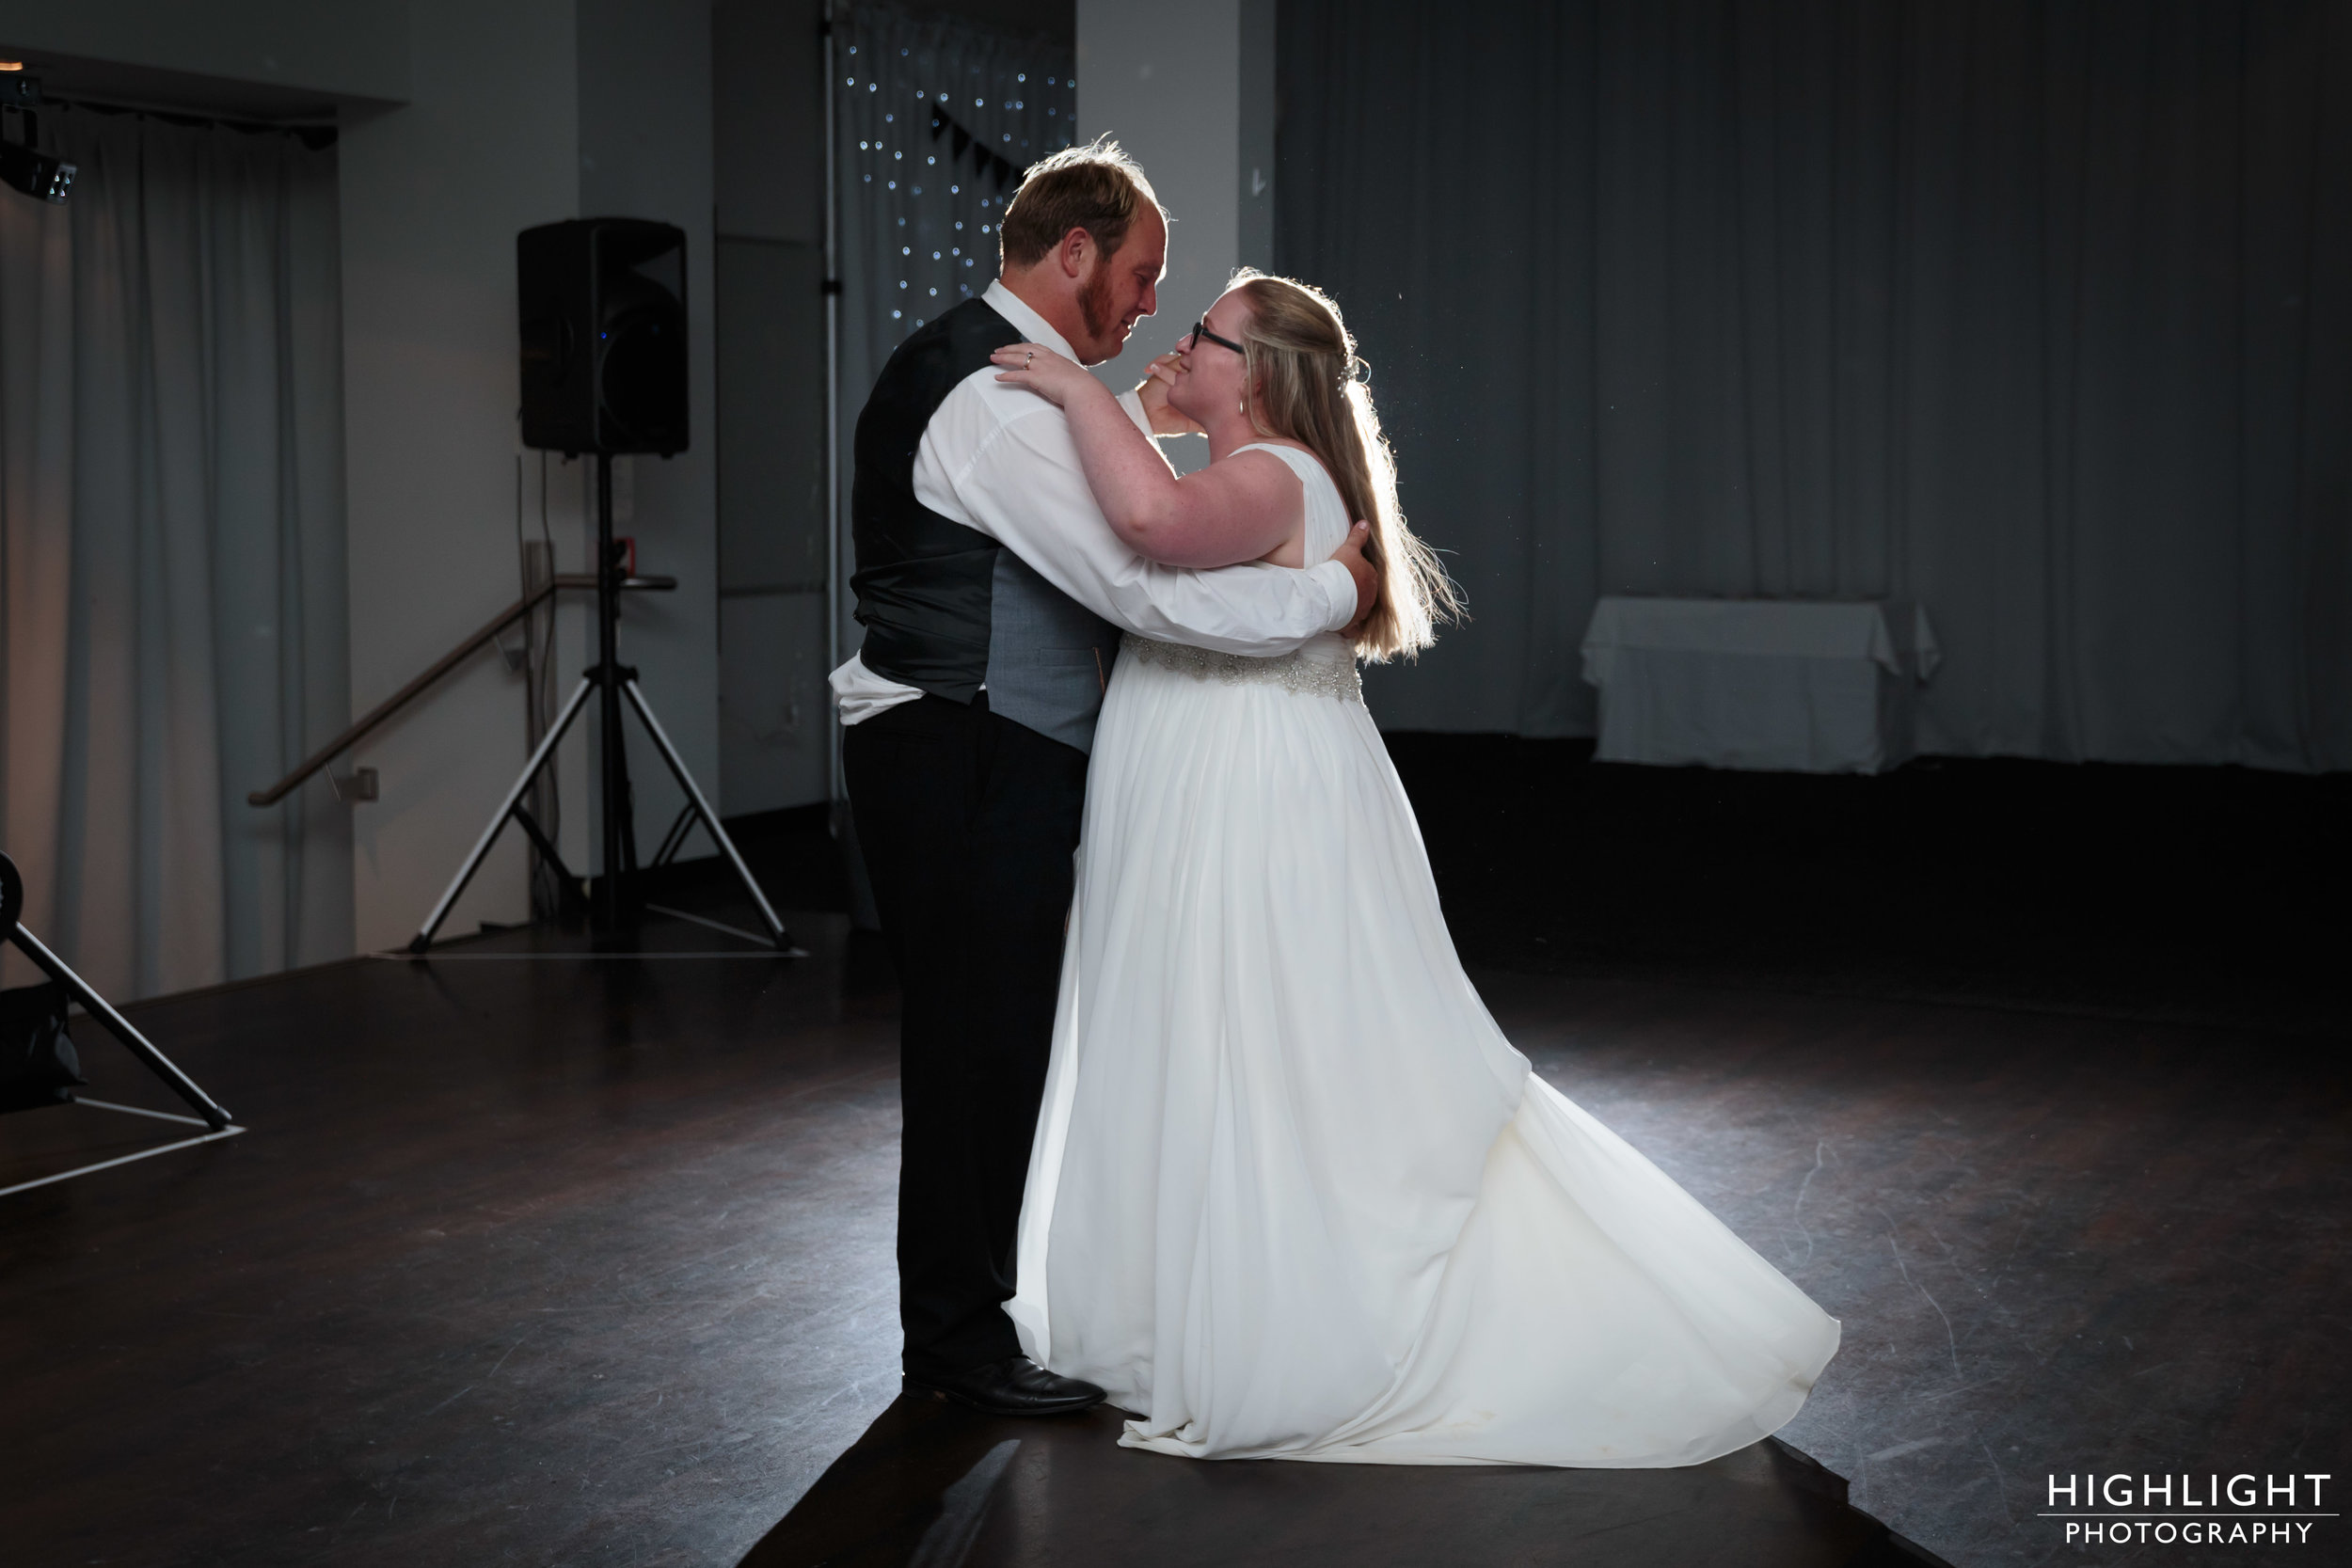 highlight-wedding-photography-new-zealand-palmerston-north-161.jpg